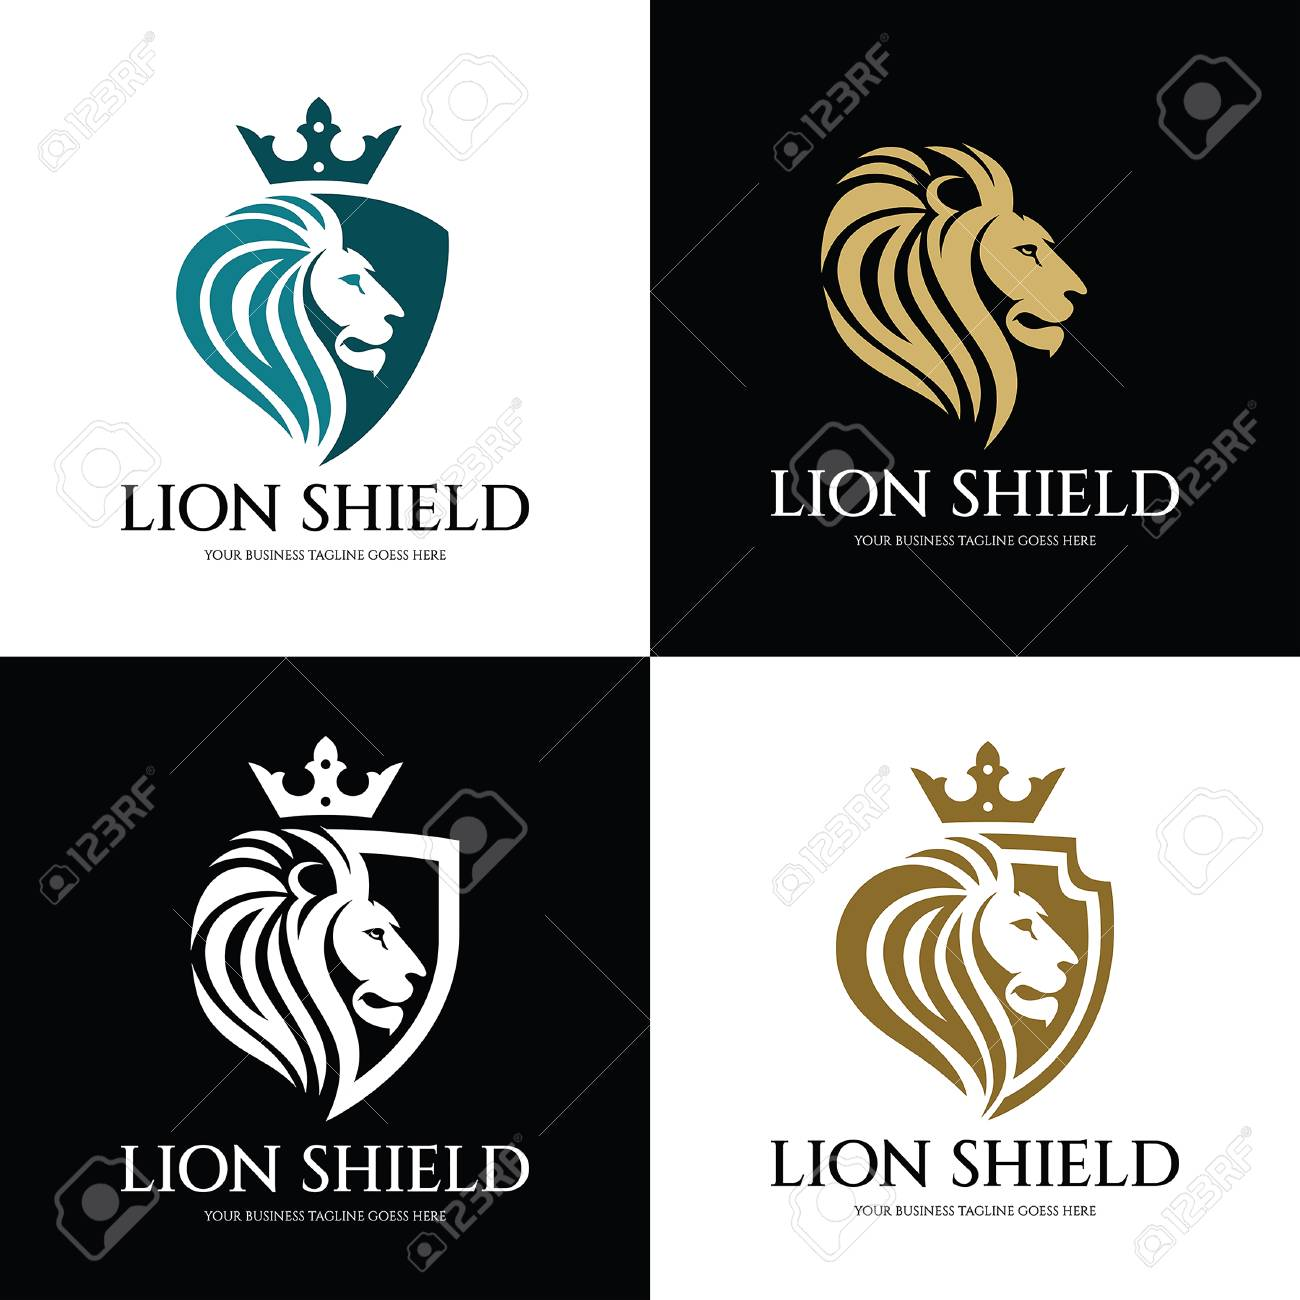 Lion Shield Logo Design Template Lion Head Logo Vector Illustration Royalty Free Cliparts Vectors And Stock Illustration Image 87886194